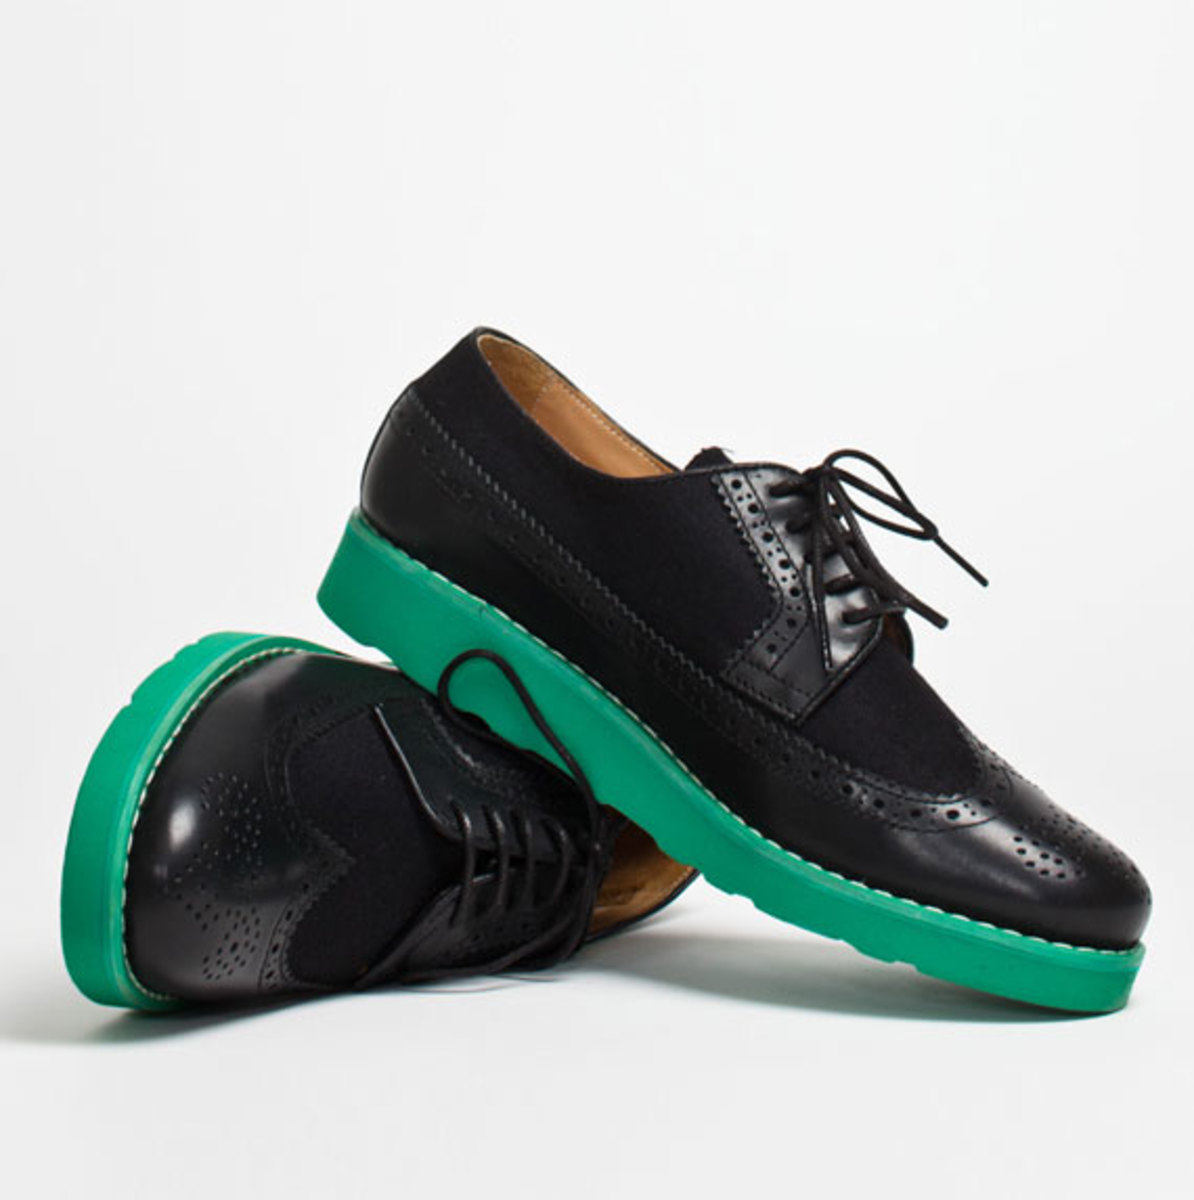 comme-des-garcons-shirt-the-generic-man-fall-2012-footwear-collection-19